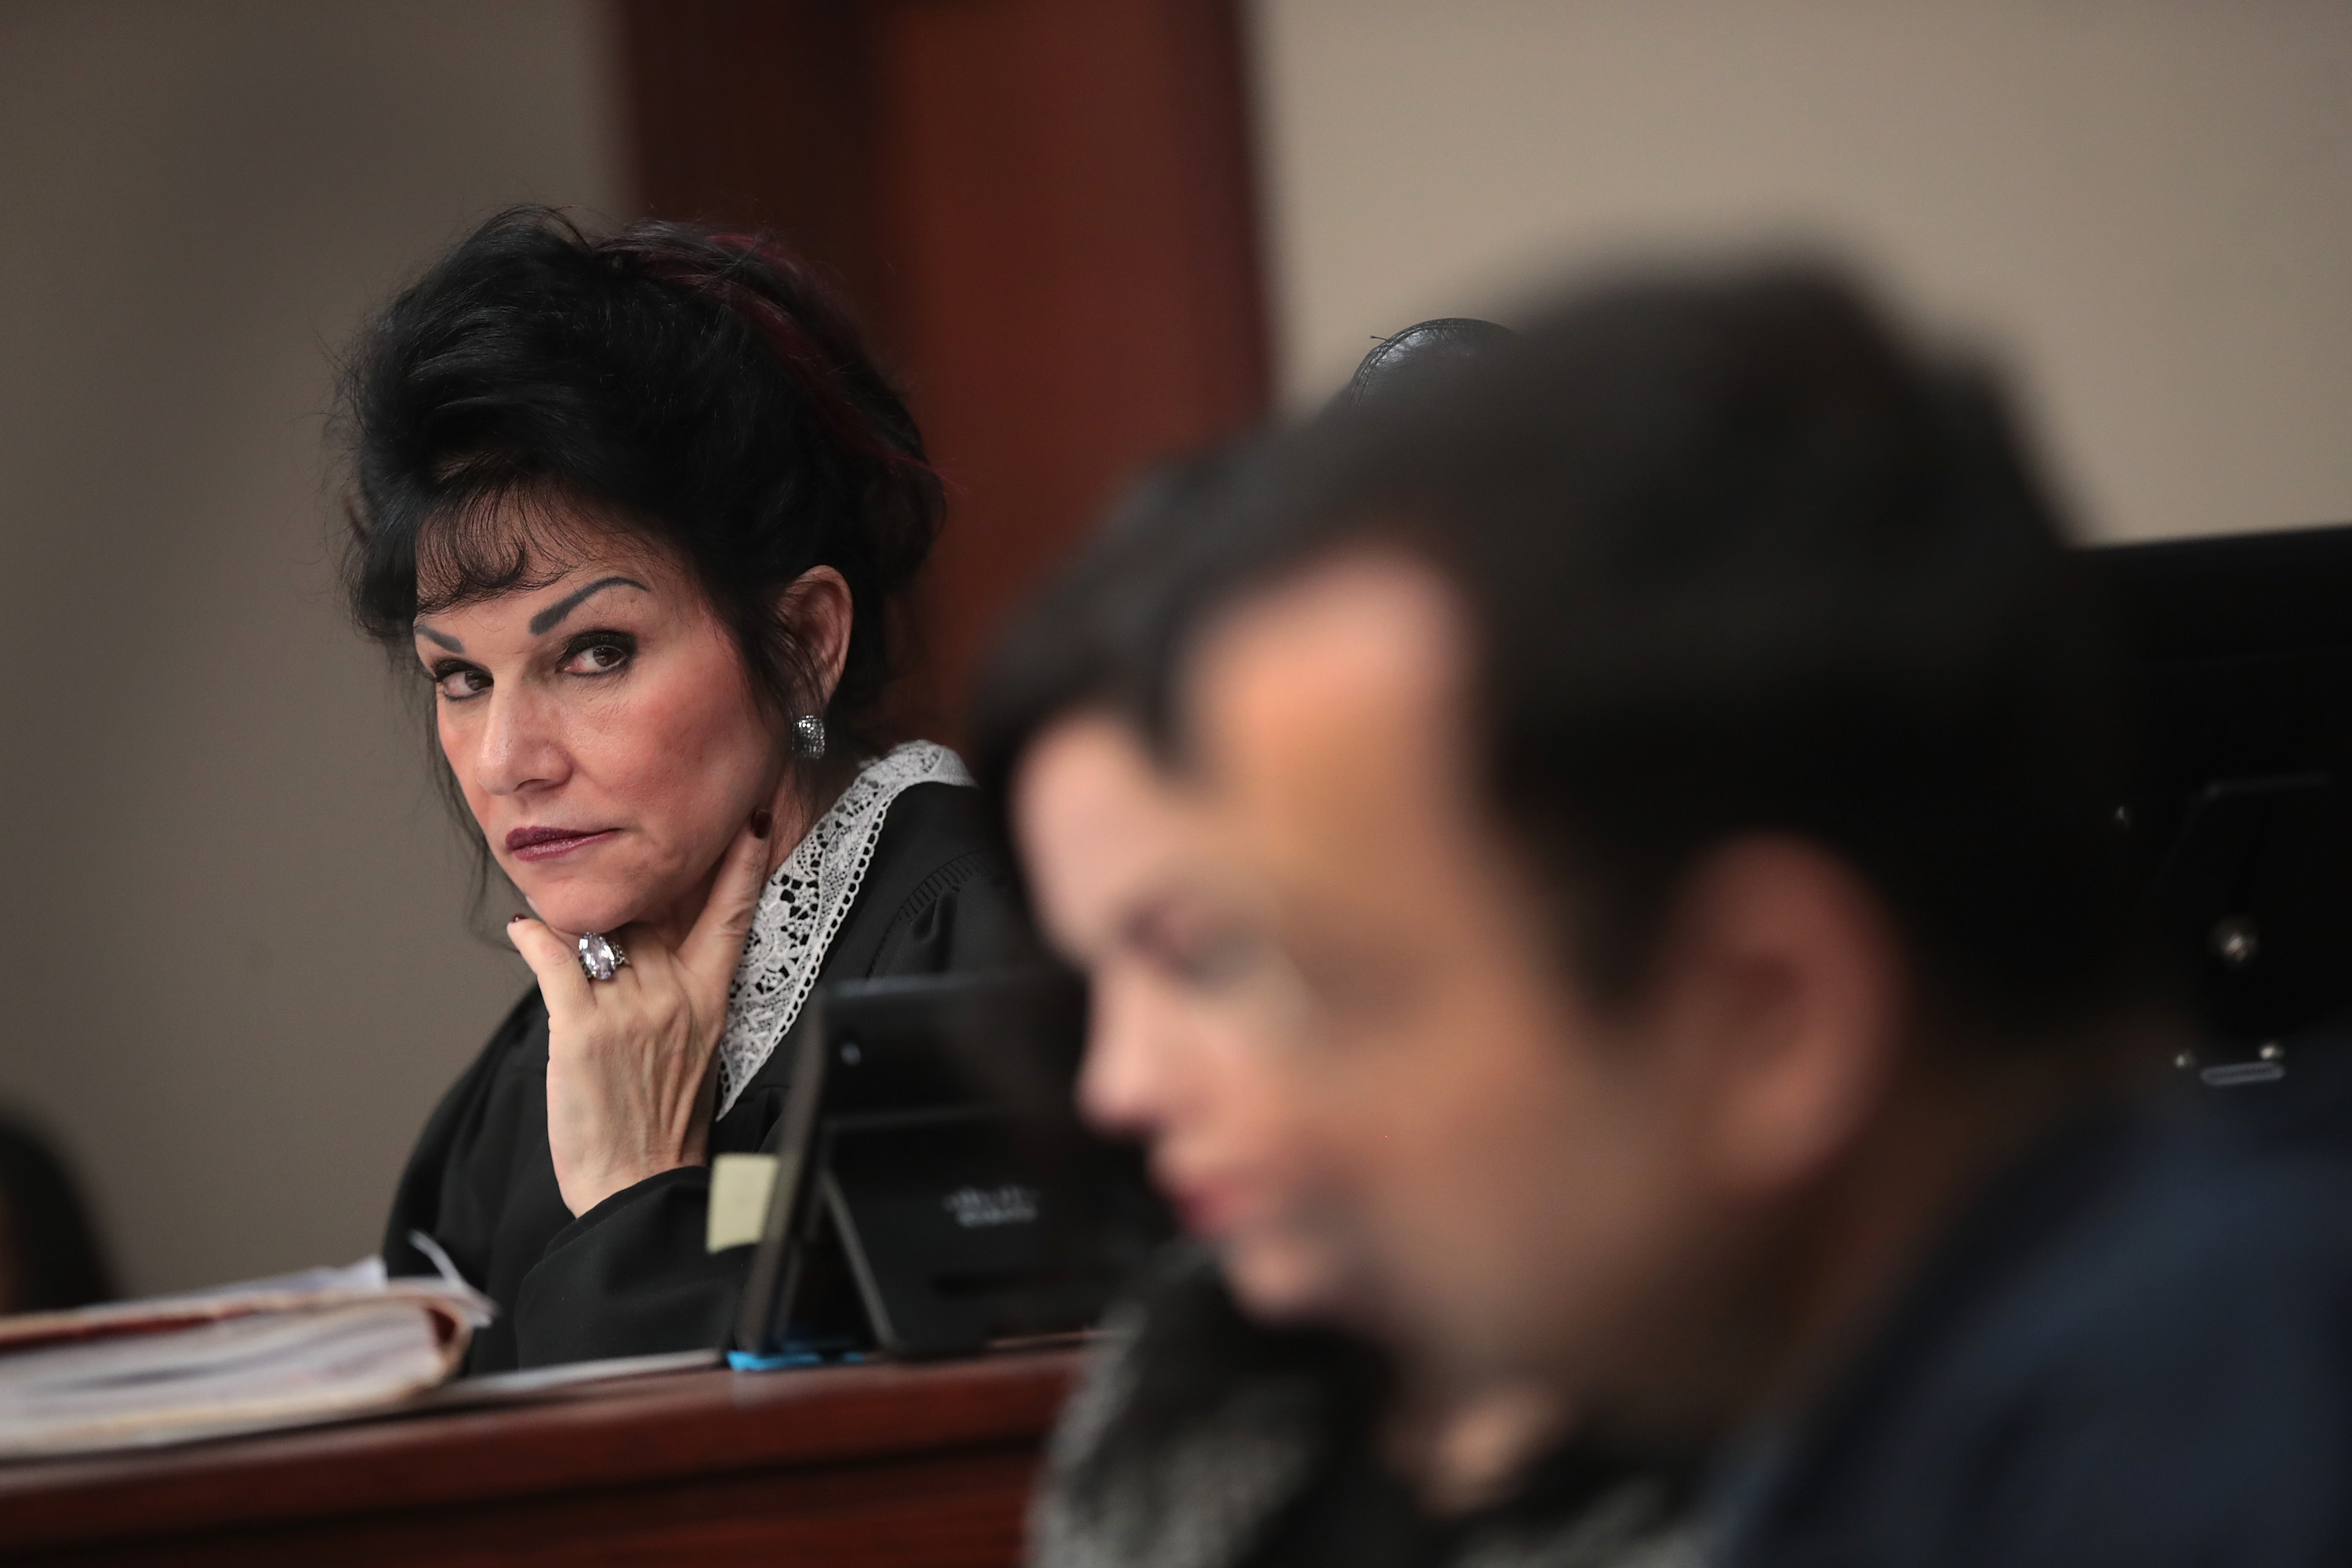 Judge Rosemarie Aquilina (L) looks at Larry Nassar (R) as he listens to a victim's impact statement by Jennifer Rood Bedford prior to being sentenced Wednesday. Photo by Scott Olson/Getty Images